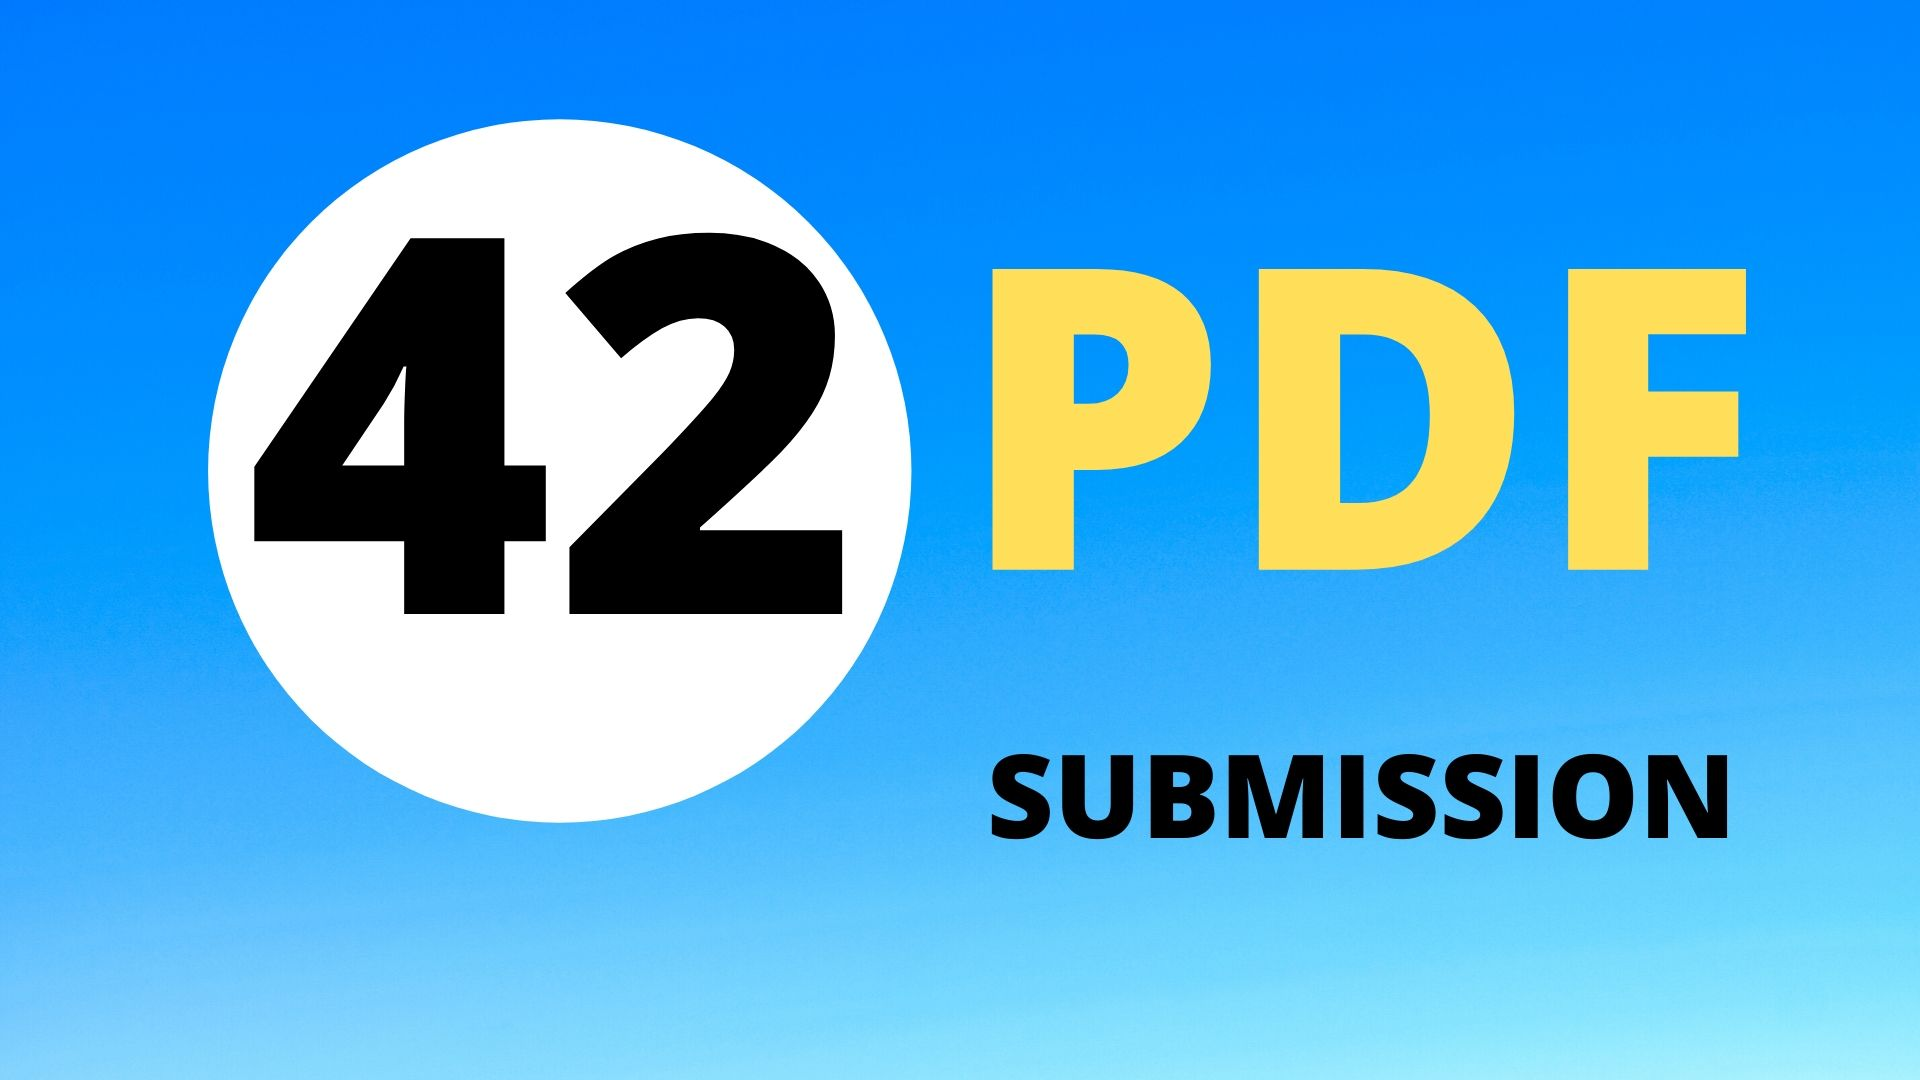 I will manually do pdf submission to top 42 doc sharing sites